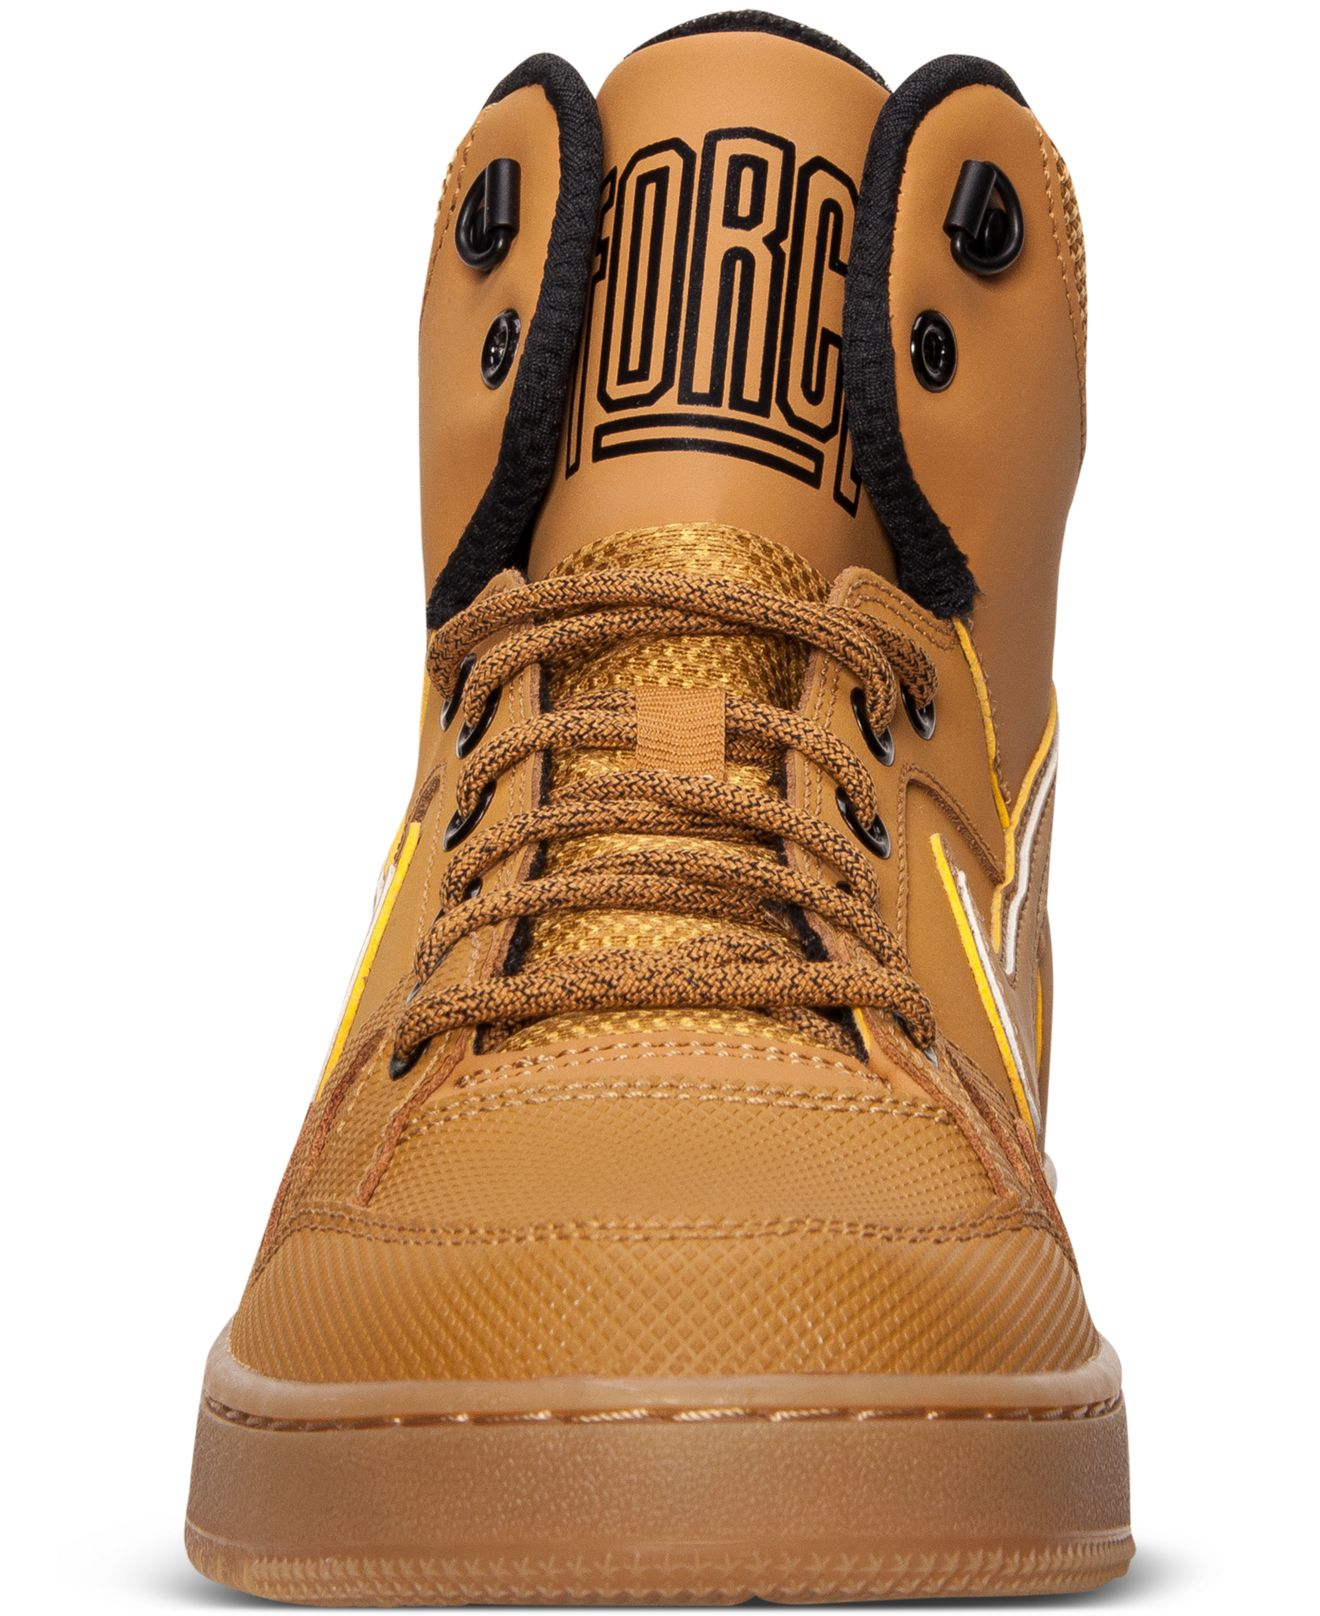 92f8d7e2f0b Lyst - Nike Men s Son Of Force Mid Winter Casual Sneakers From Finish Line  in Brown for Men